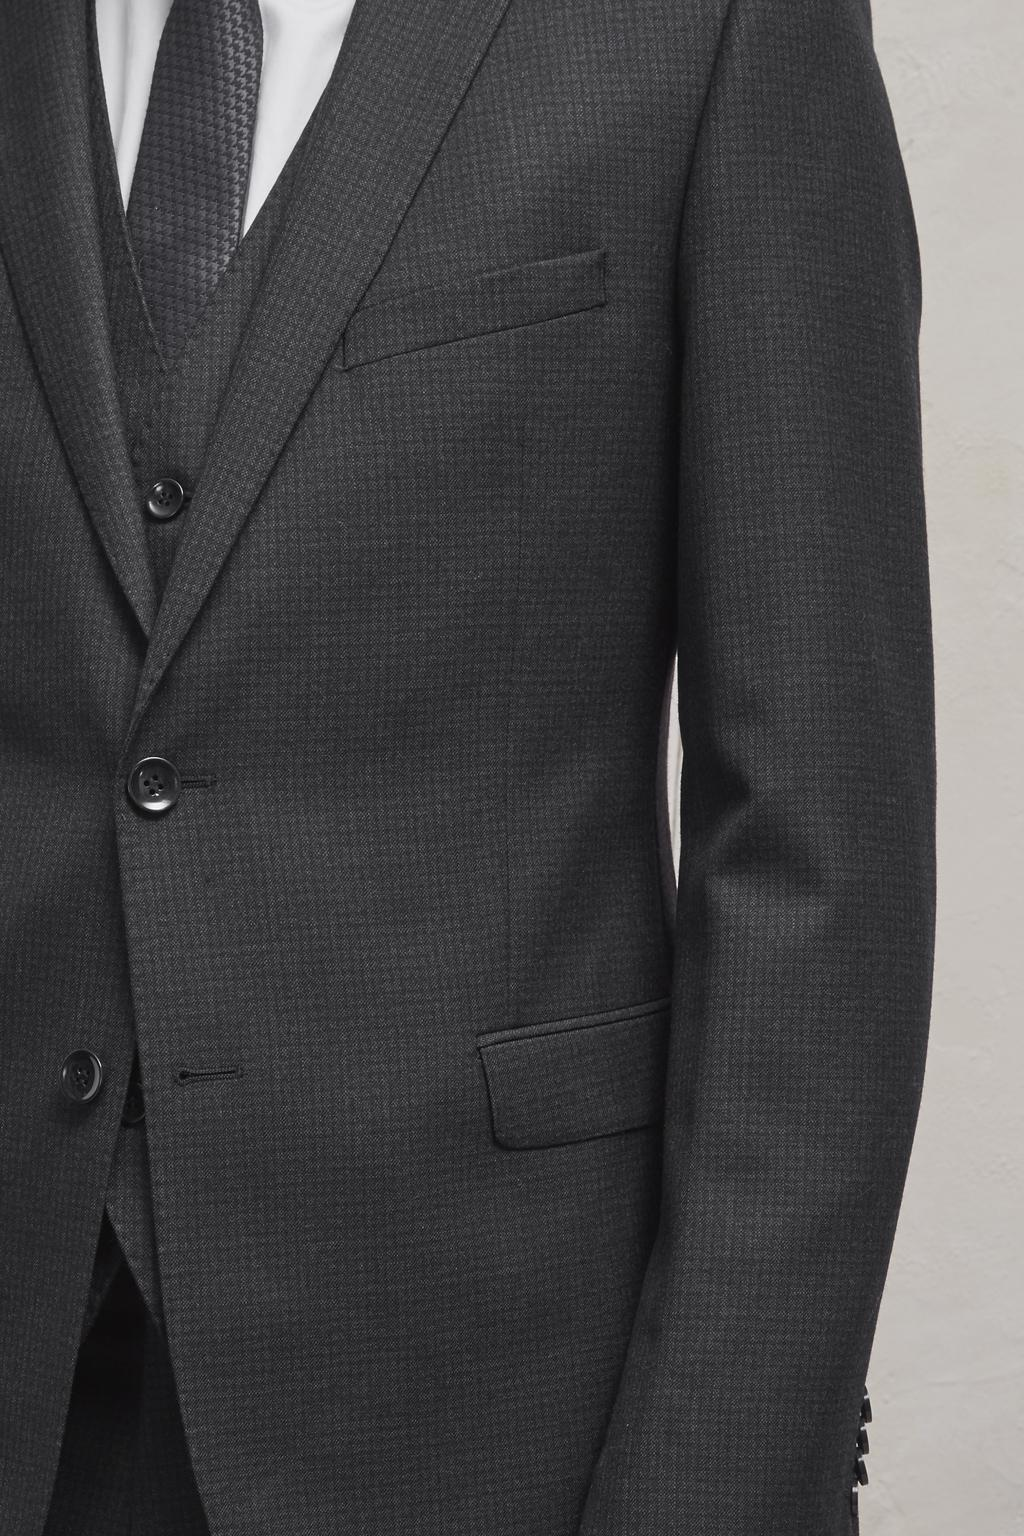 French Connection Wool Indigo Mini Check Suit Jacket in Blue for Men